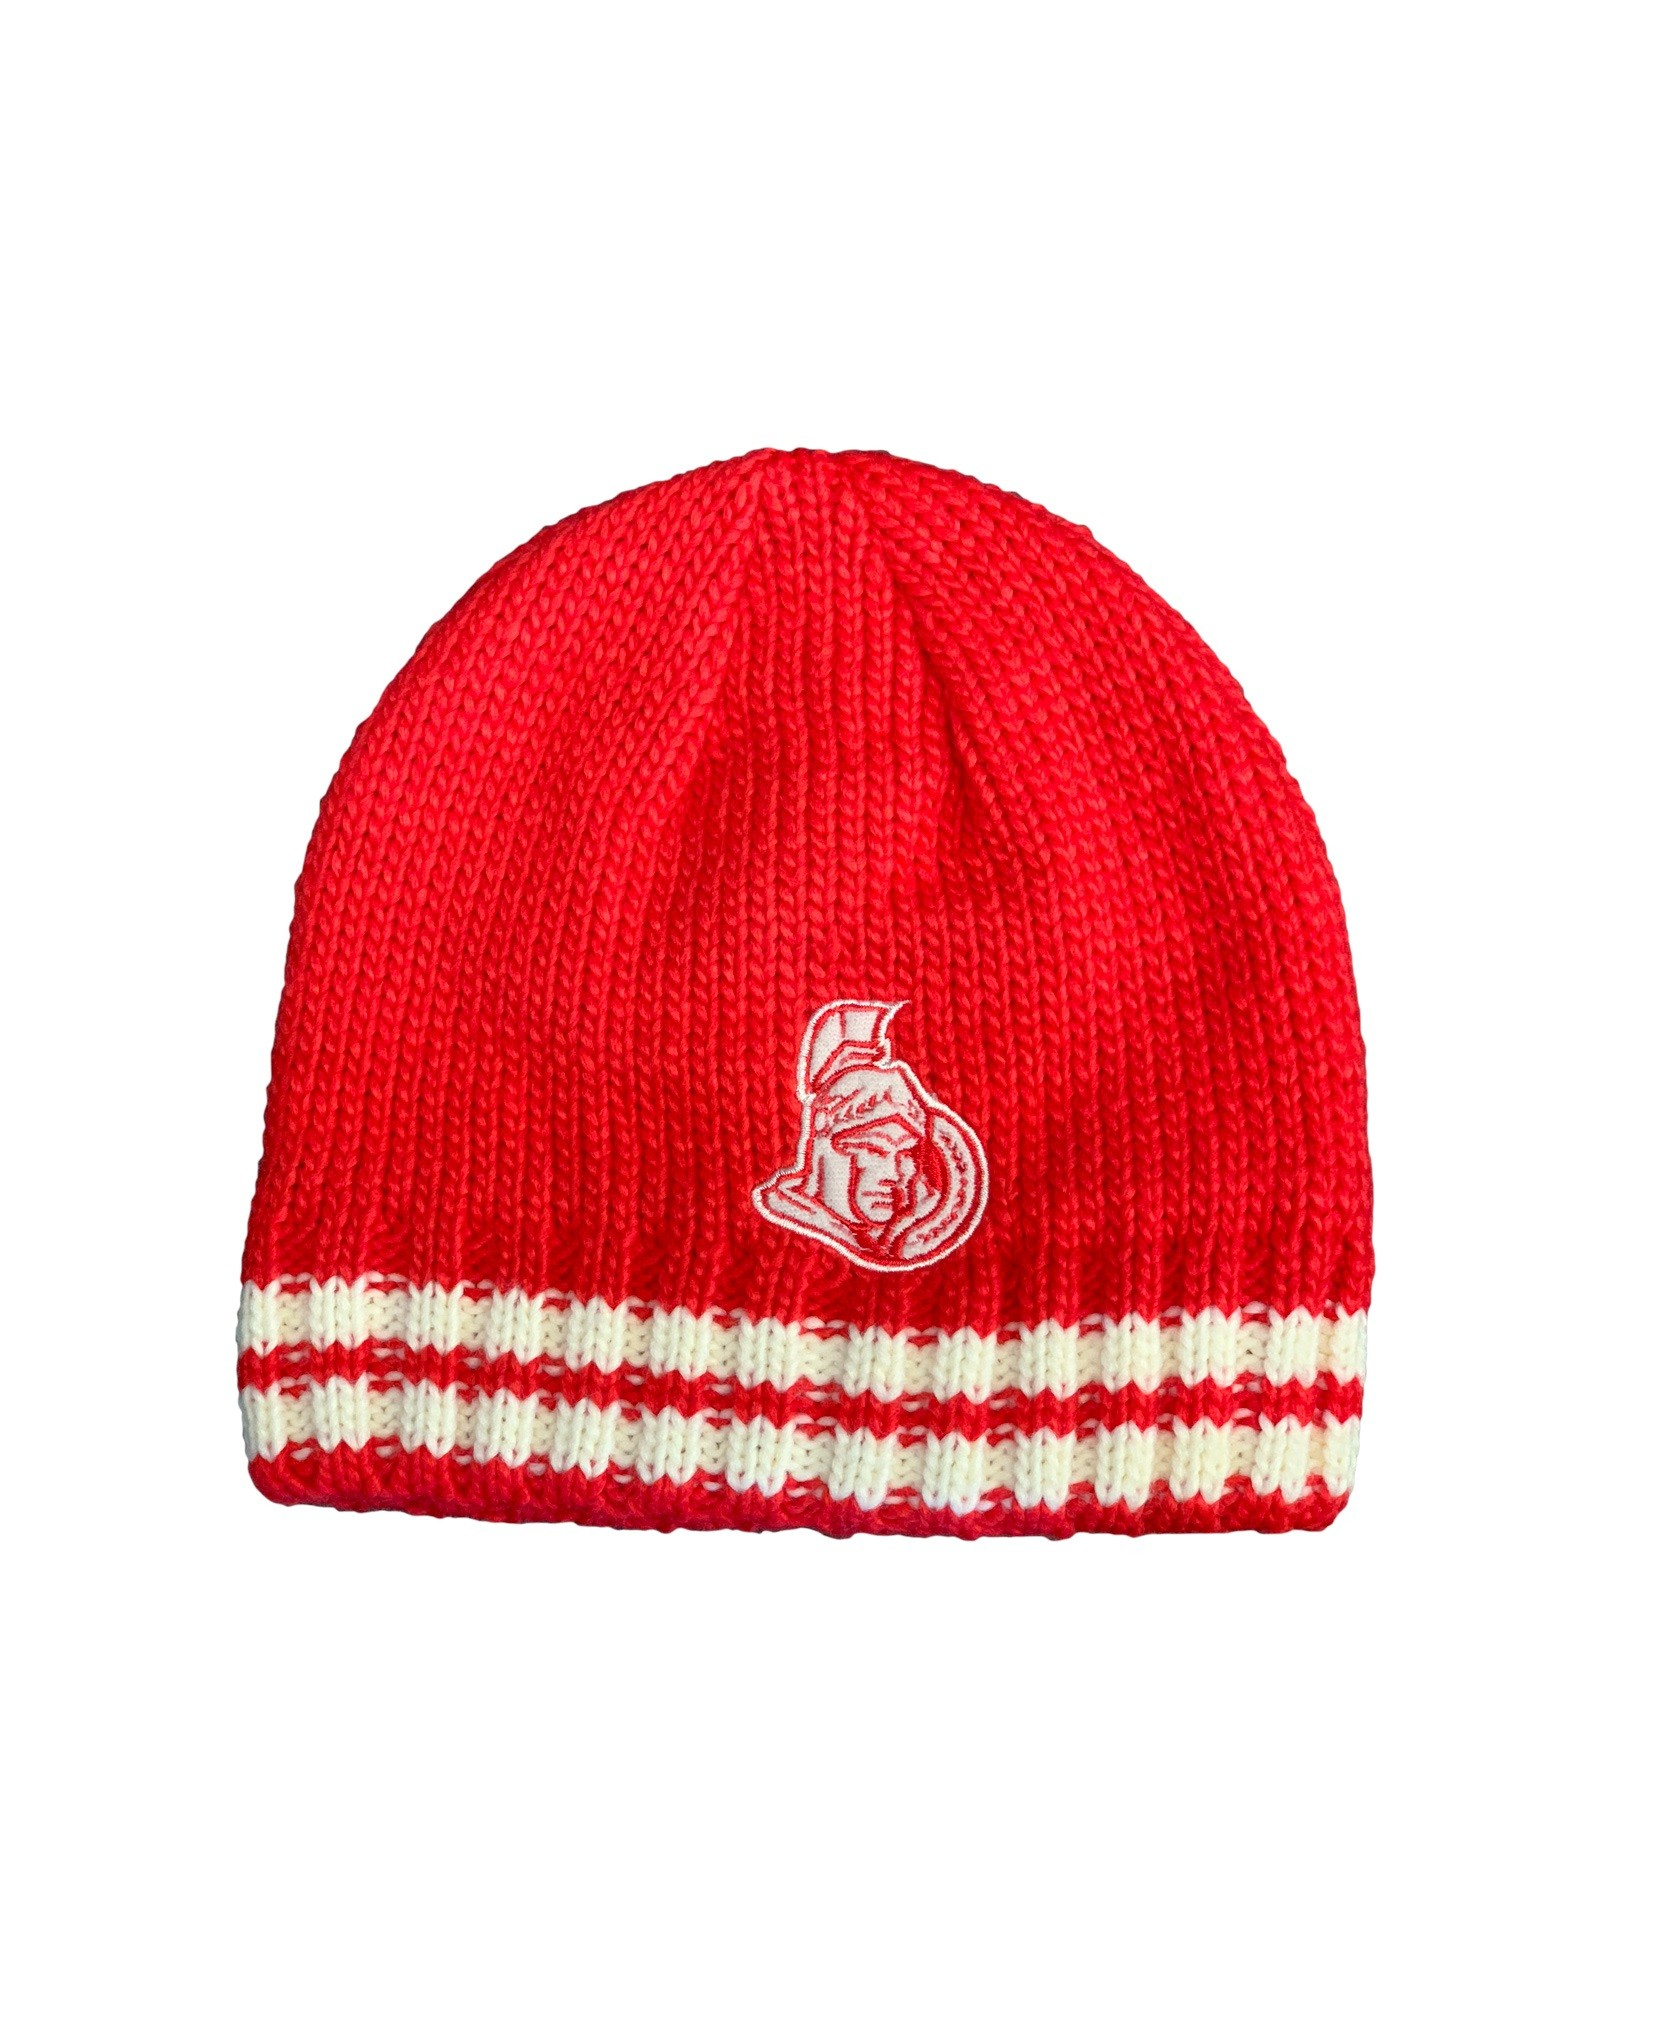 NHL Youth Ottawa Senators Podium Winter Hat